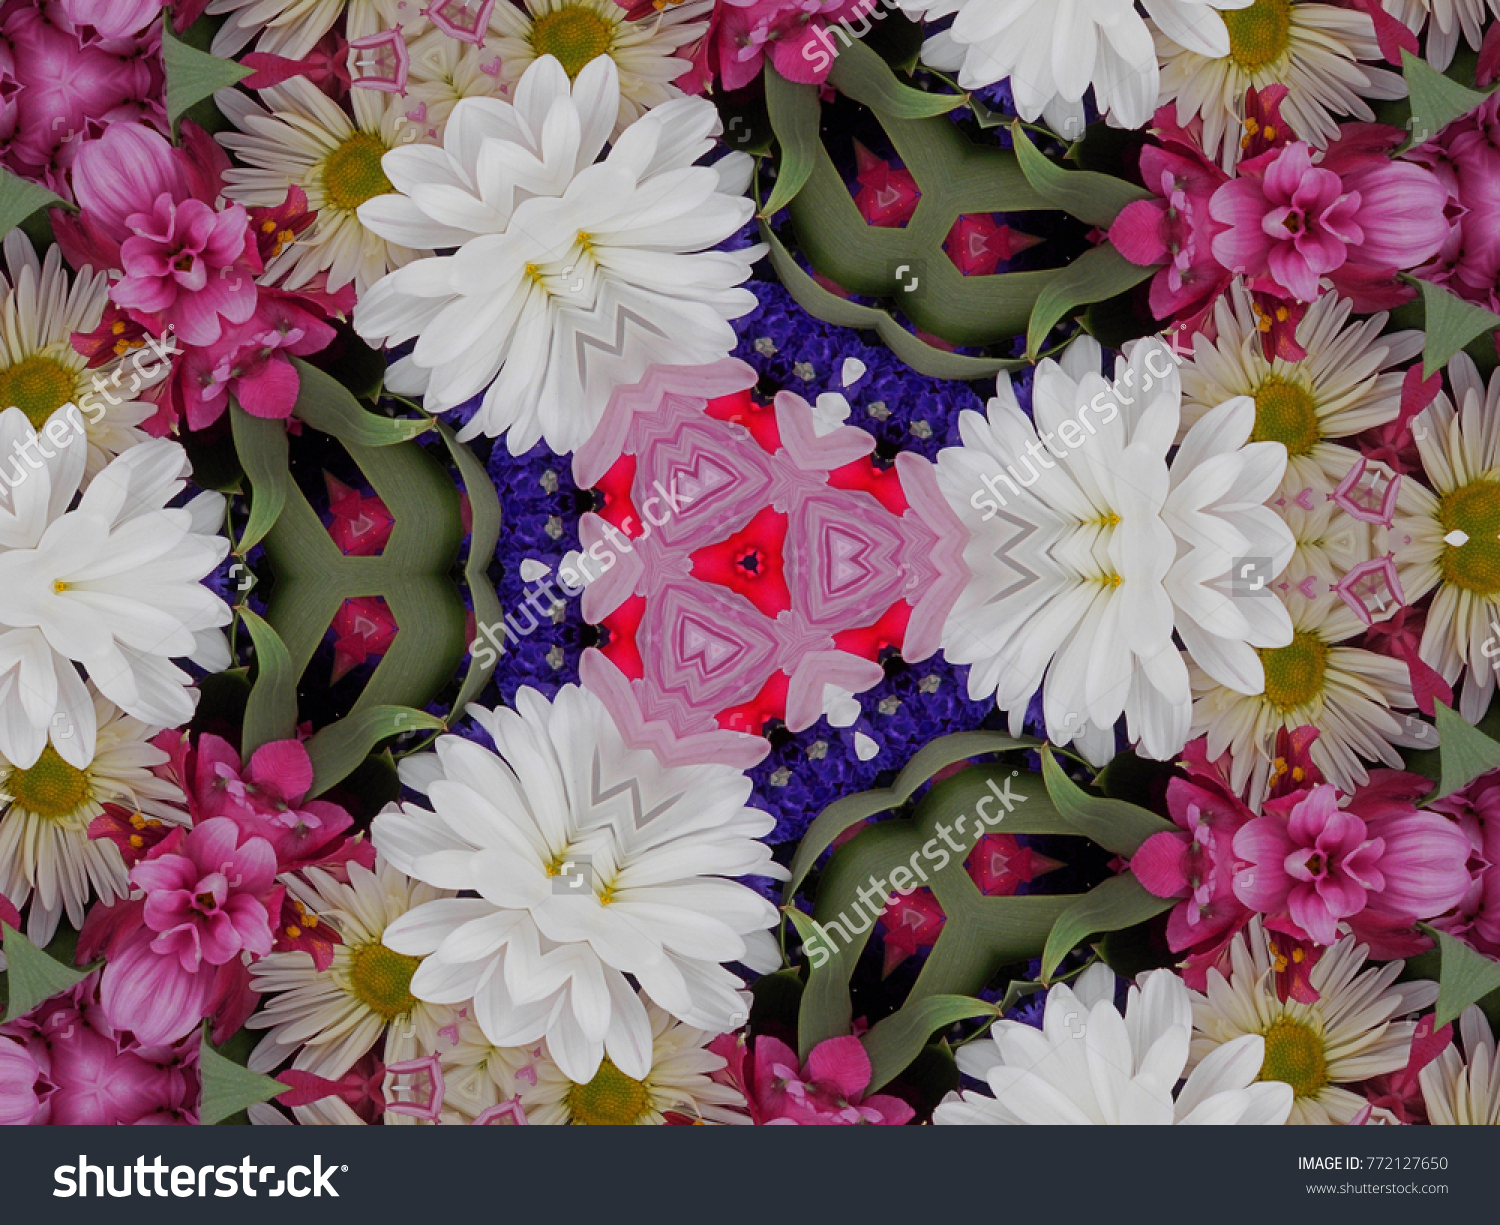 Spring flower petals leaves kaleidoscope background stock spring flower petals and leaves kaleidoscope background has beautiful natural flowers and leaves combined to make izmirmasajfo